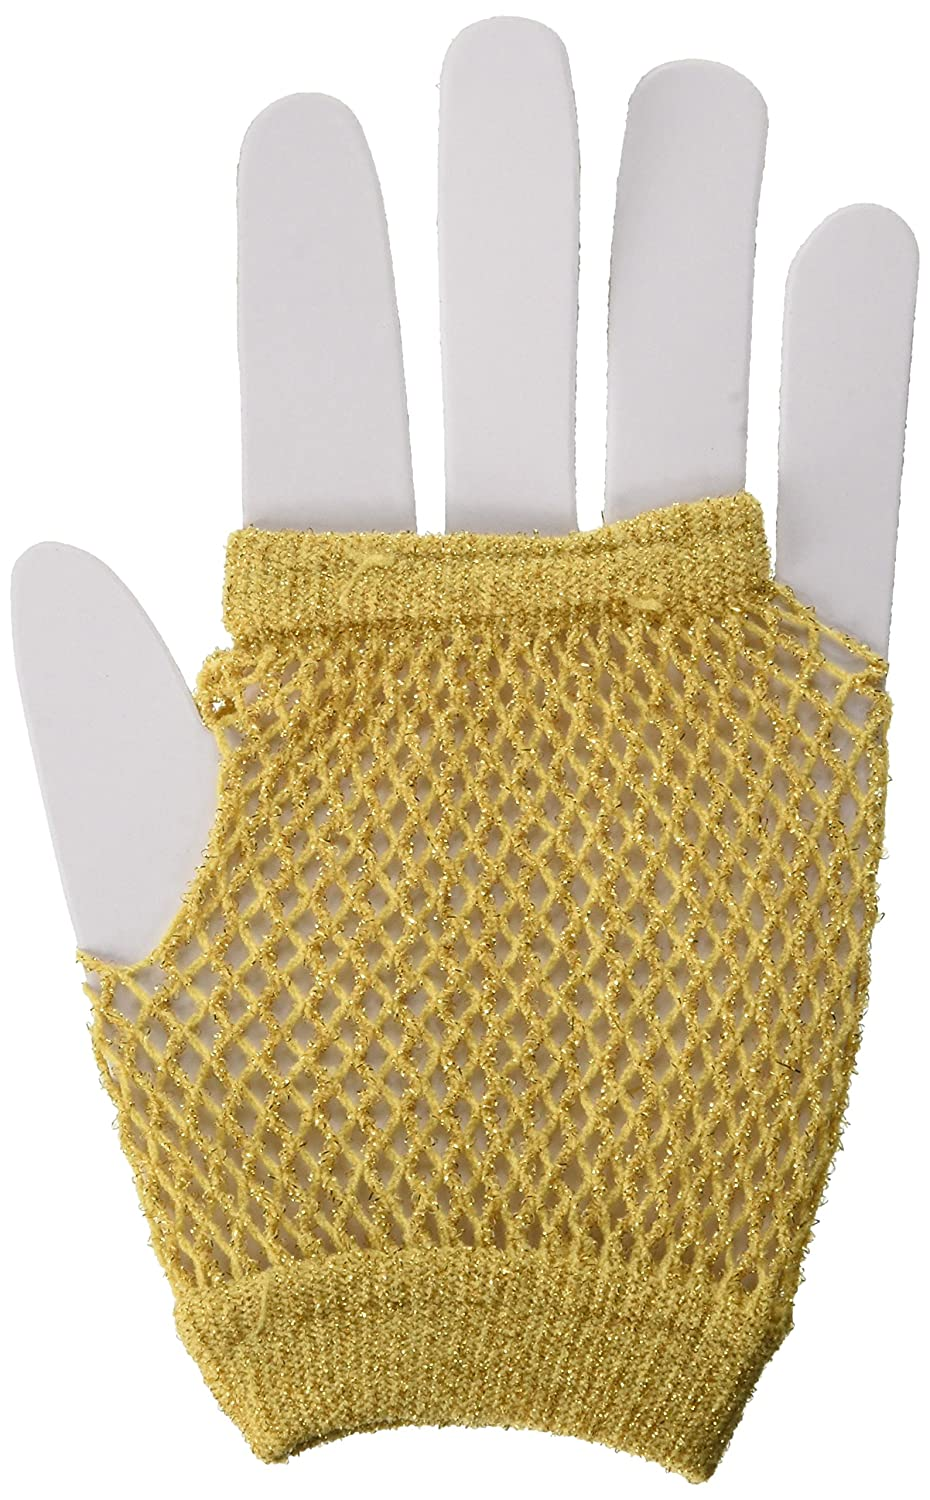 TradeMart Inc Party Accessory Gold Short Fishnet Gloves 395927.19 9 pairs 6 Pairs,